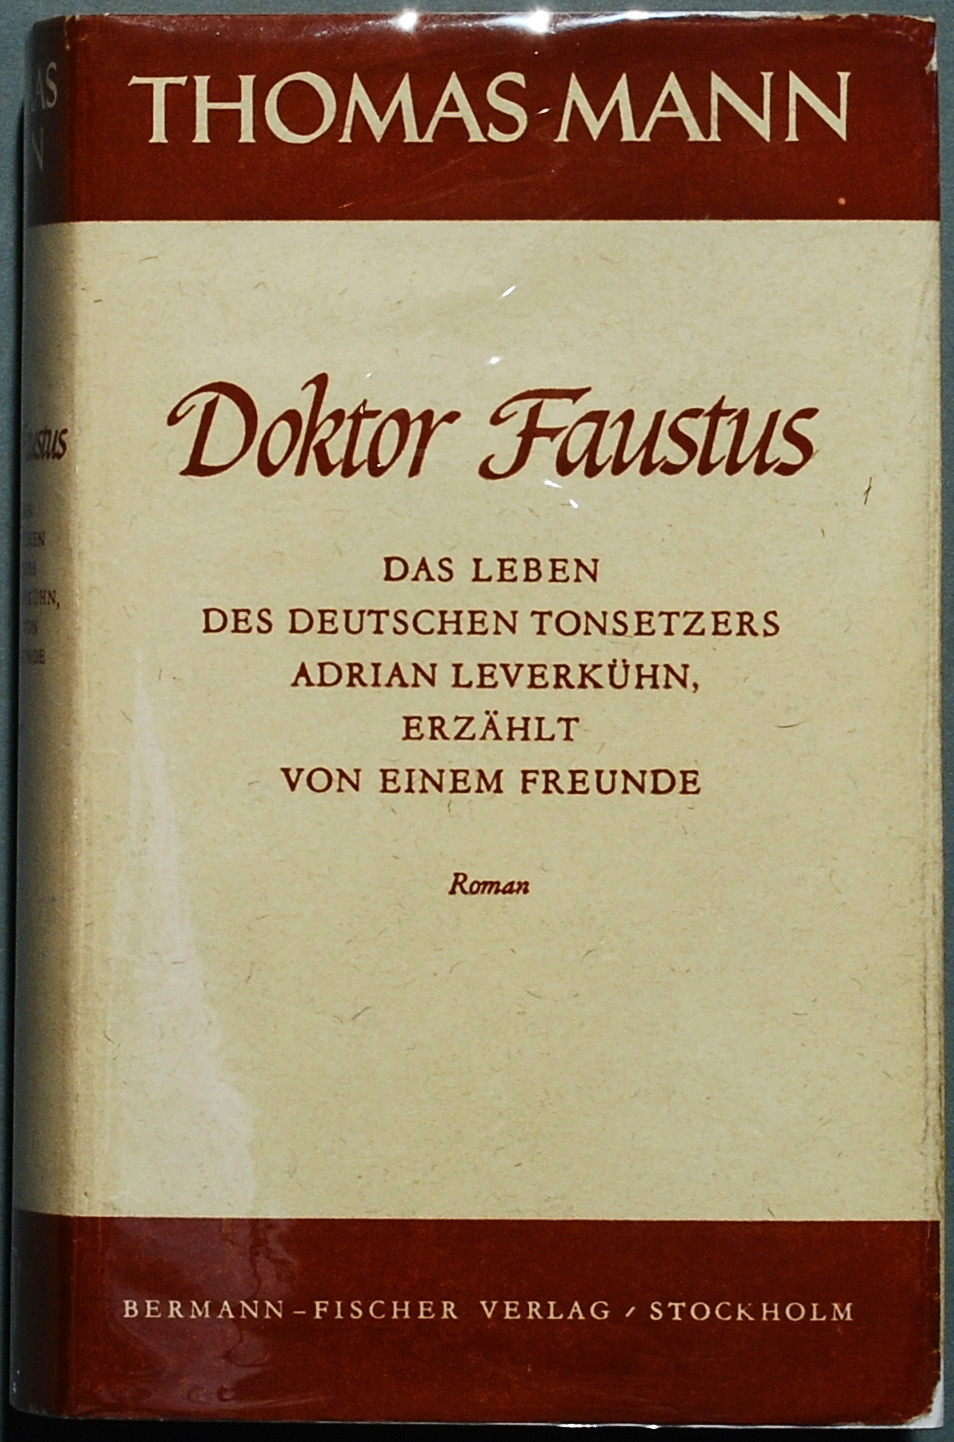 dr faustaus As early as 1930, thomas mann denounced nazi ideology in a berlin speech, entitled an appeal to reason, asserting that new movement marked a wave of anomalous barbarism, of primitive popular vulgarity.